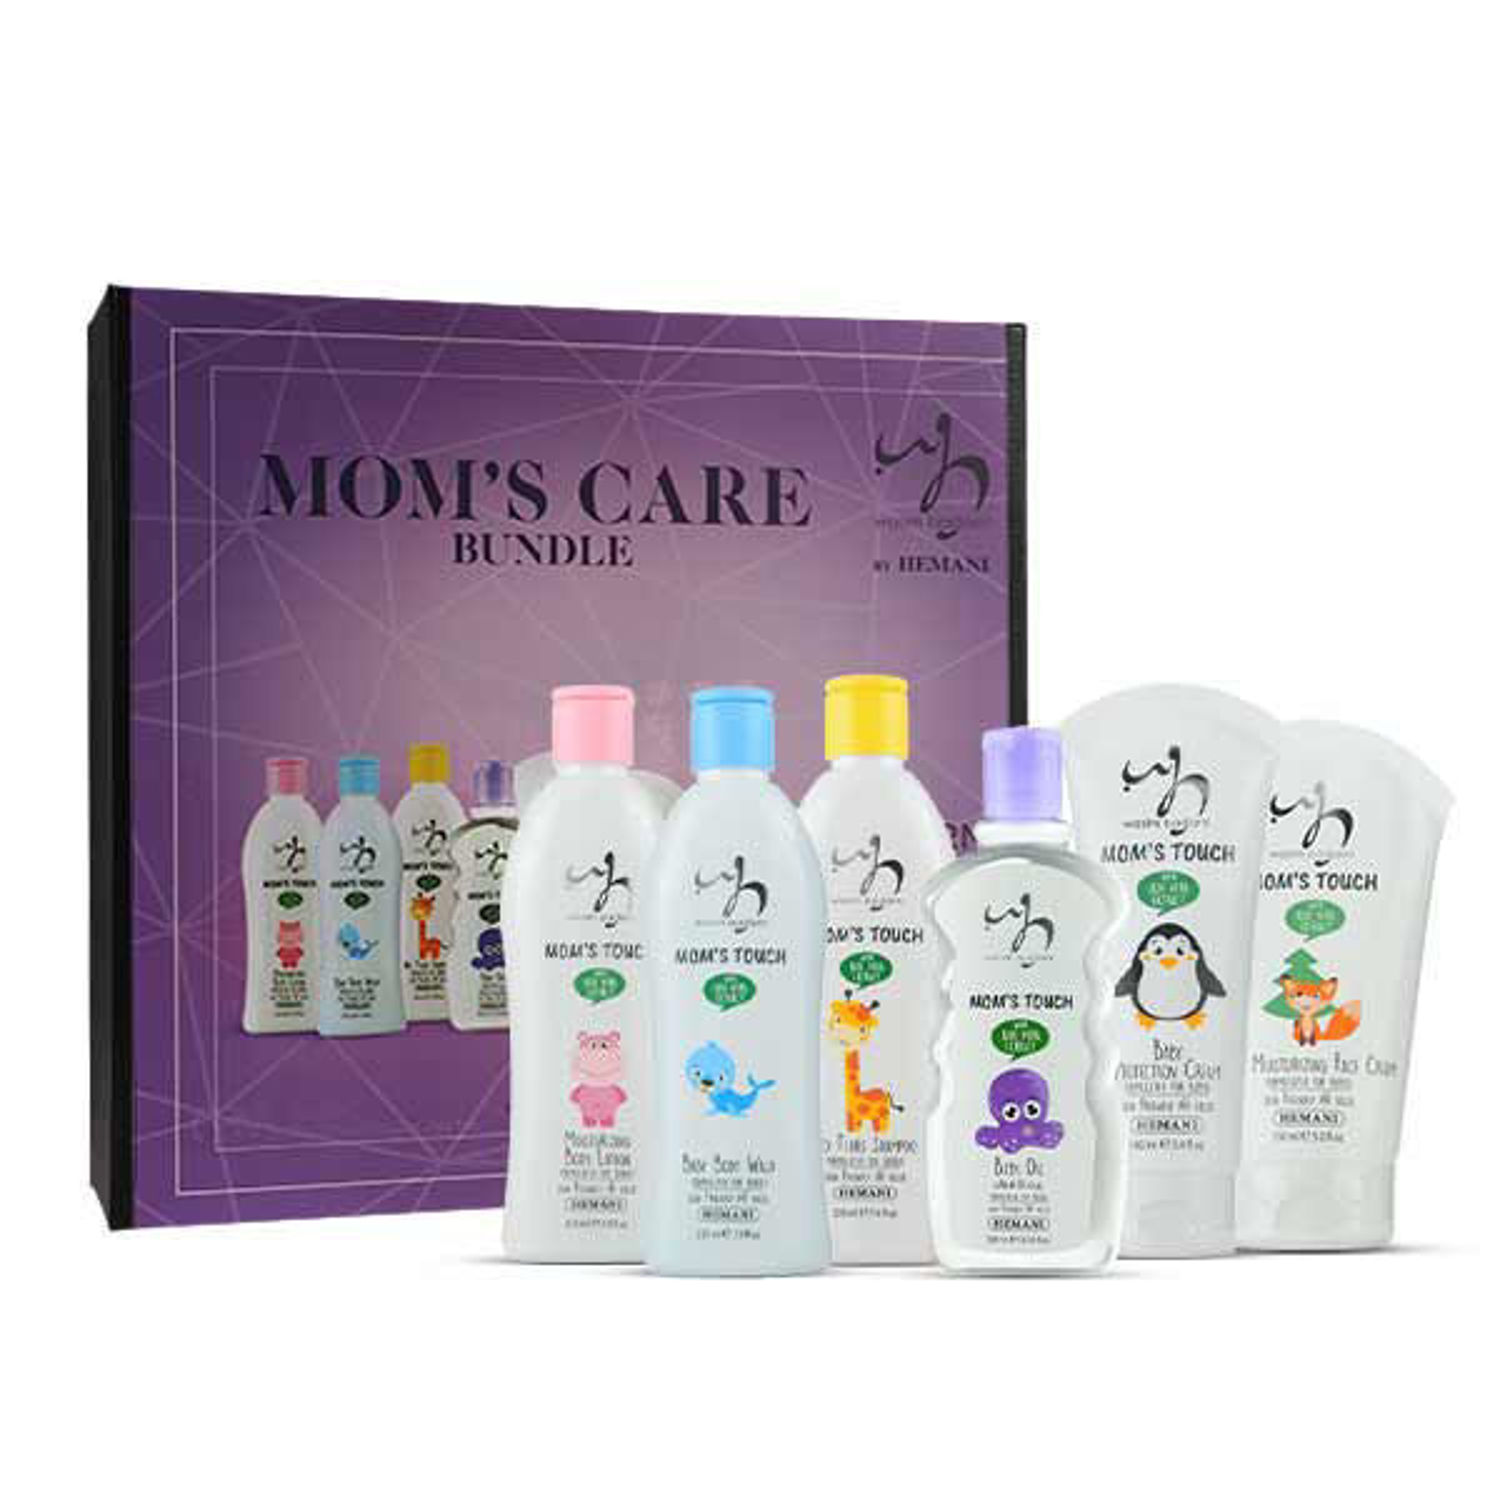 Mom's Care Bundle